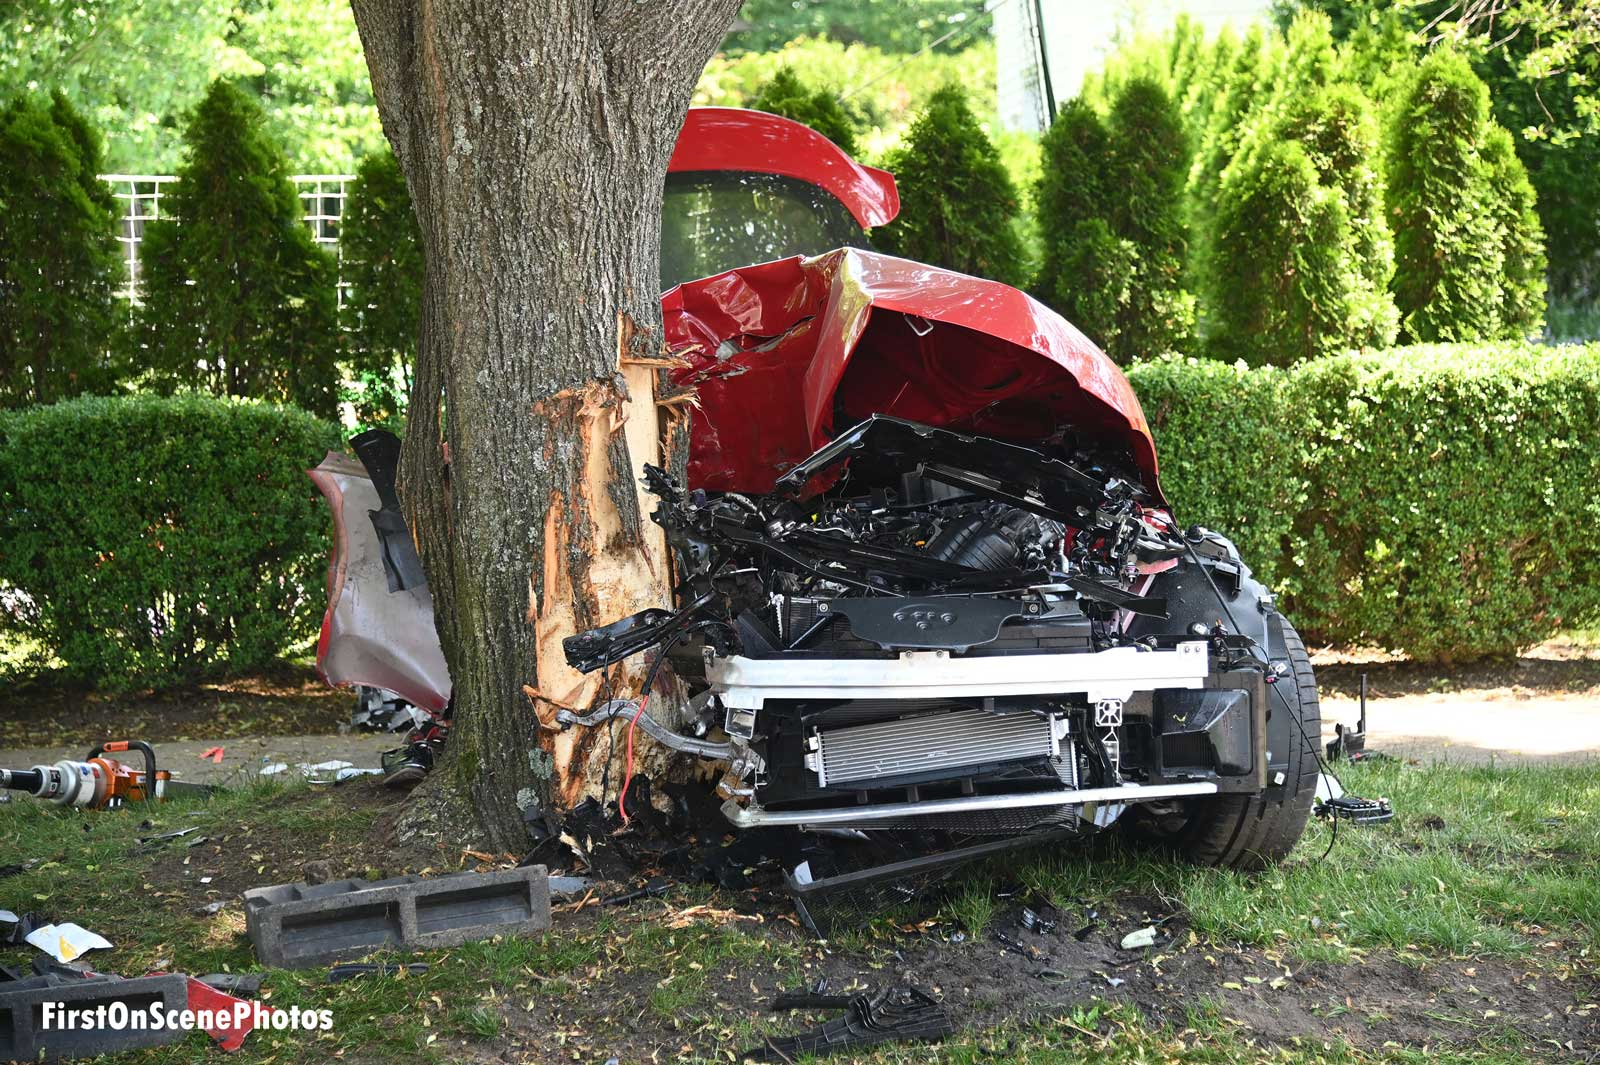 Vehicle smashed against tree